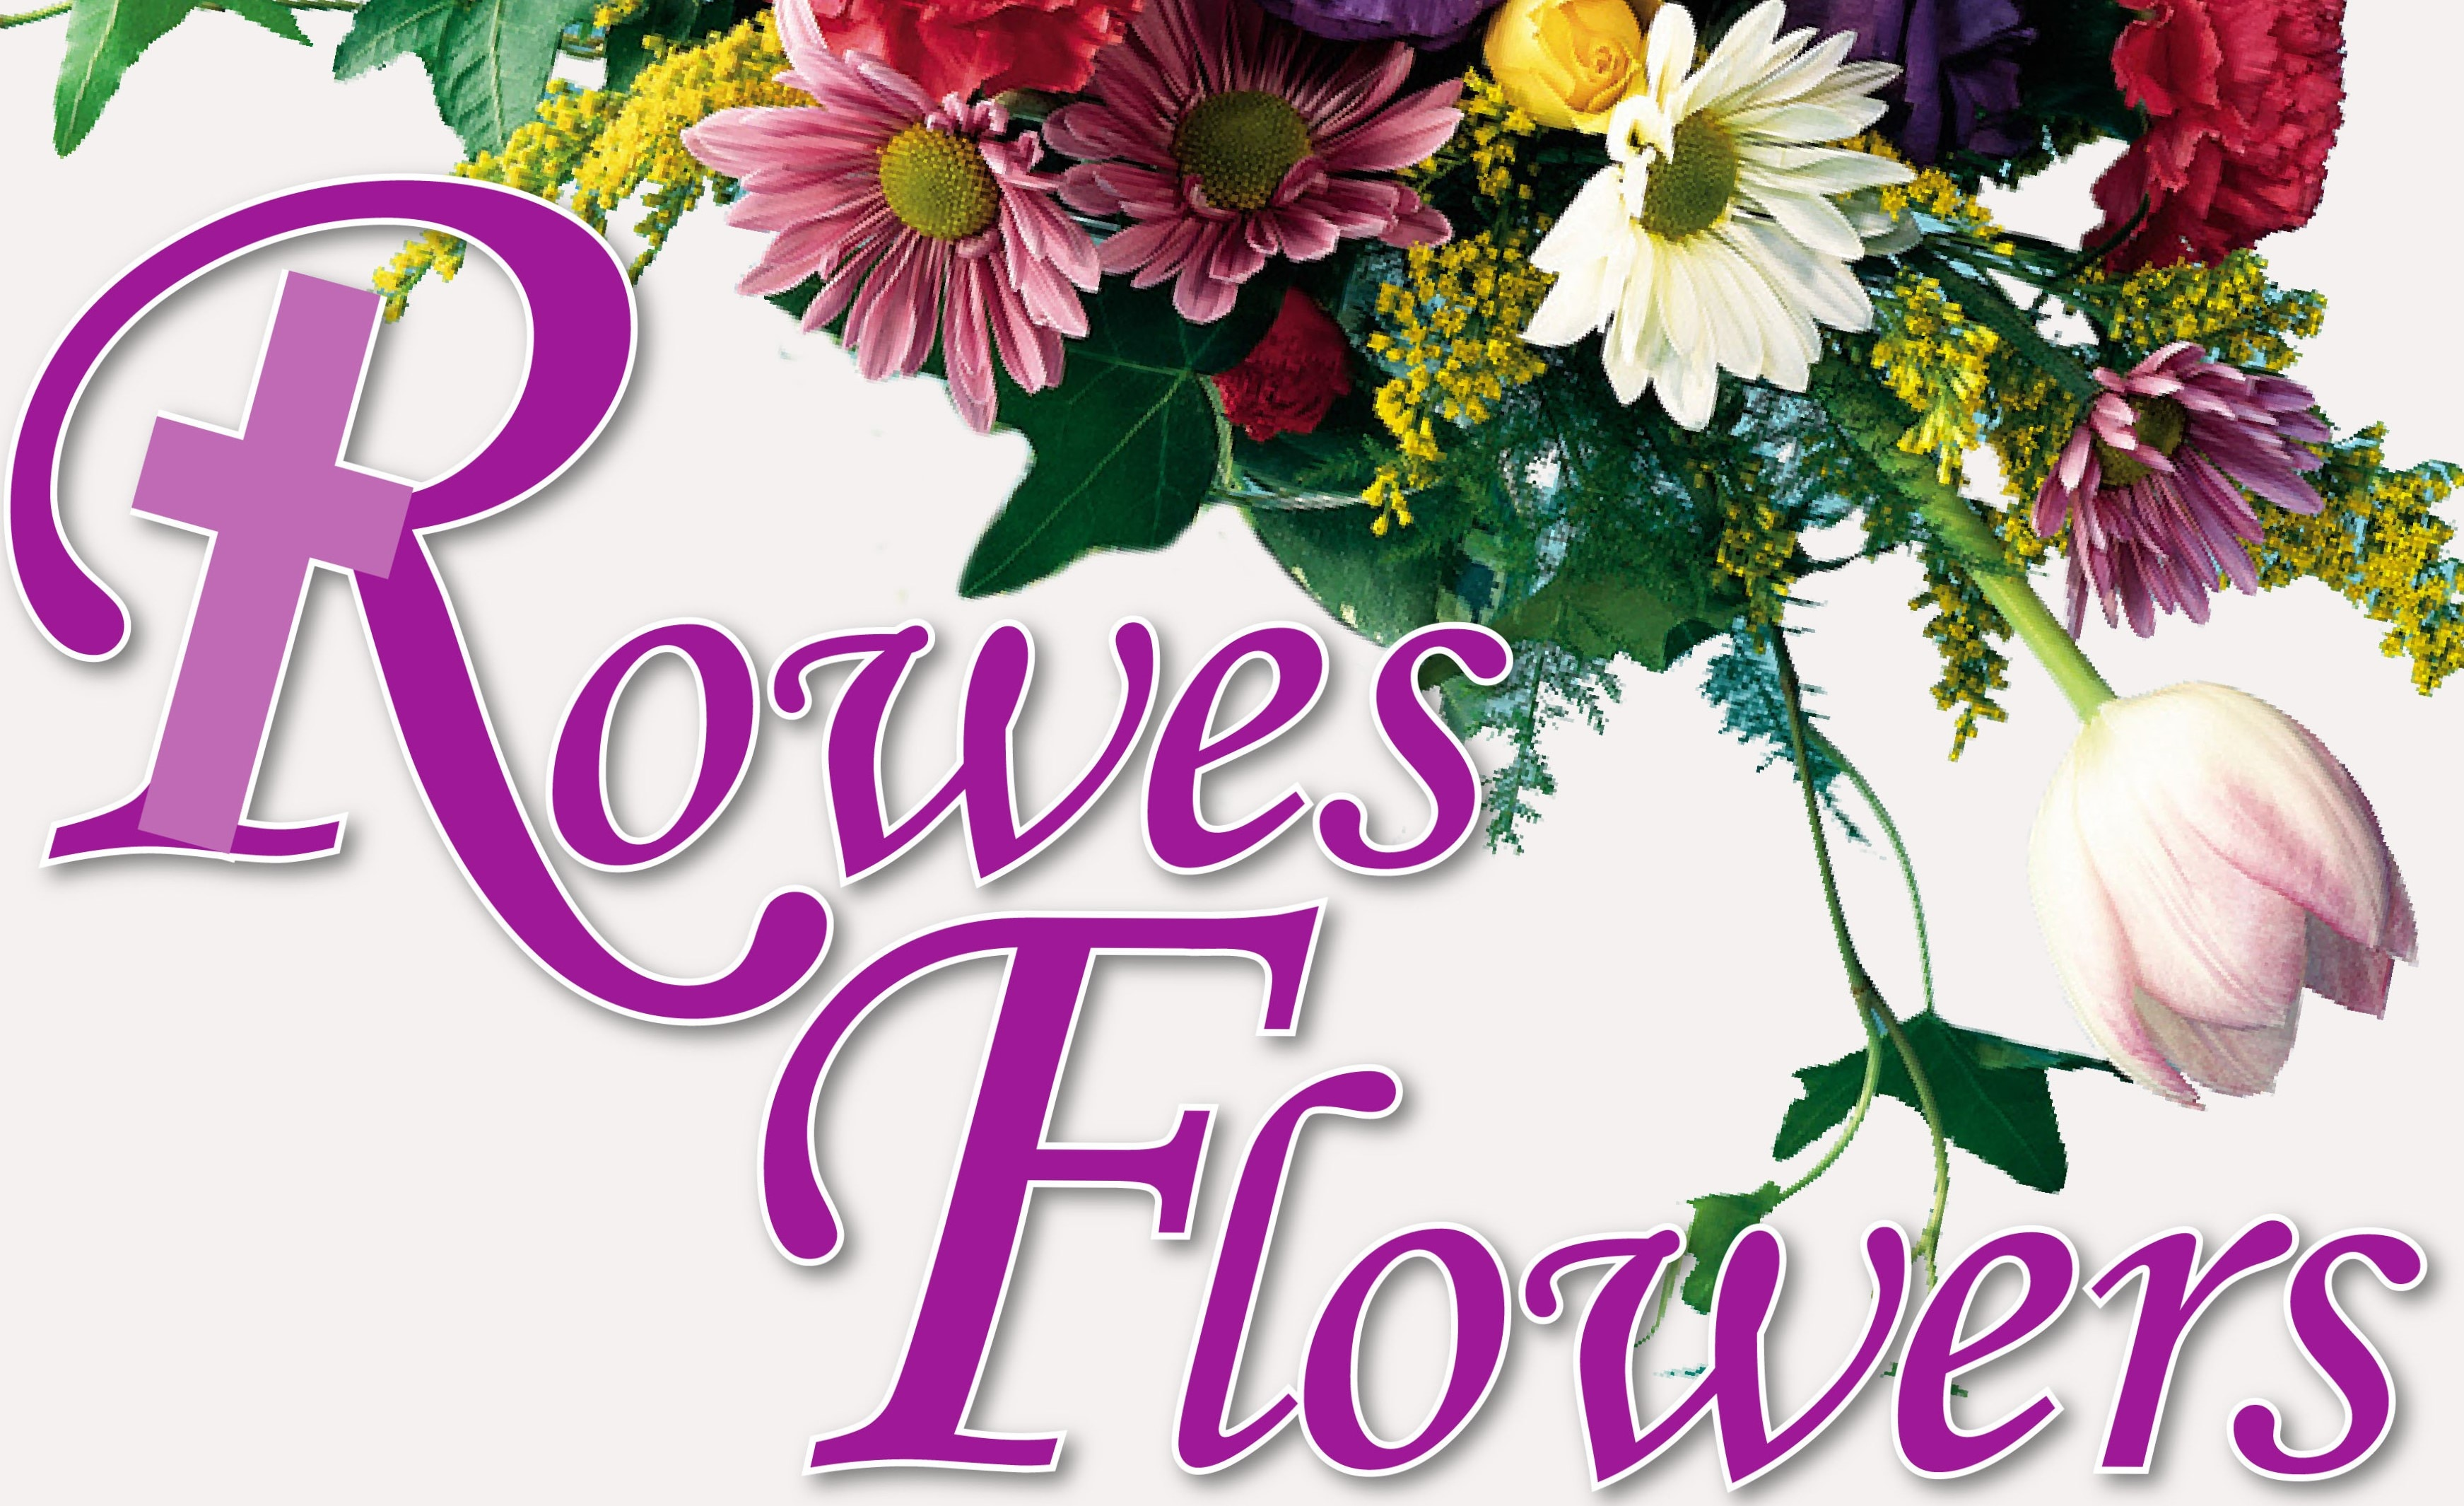 Same Day Flower Delivery Buffalo Ny